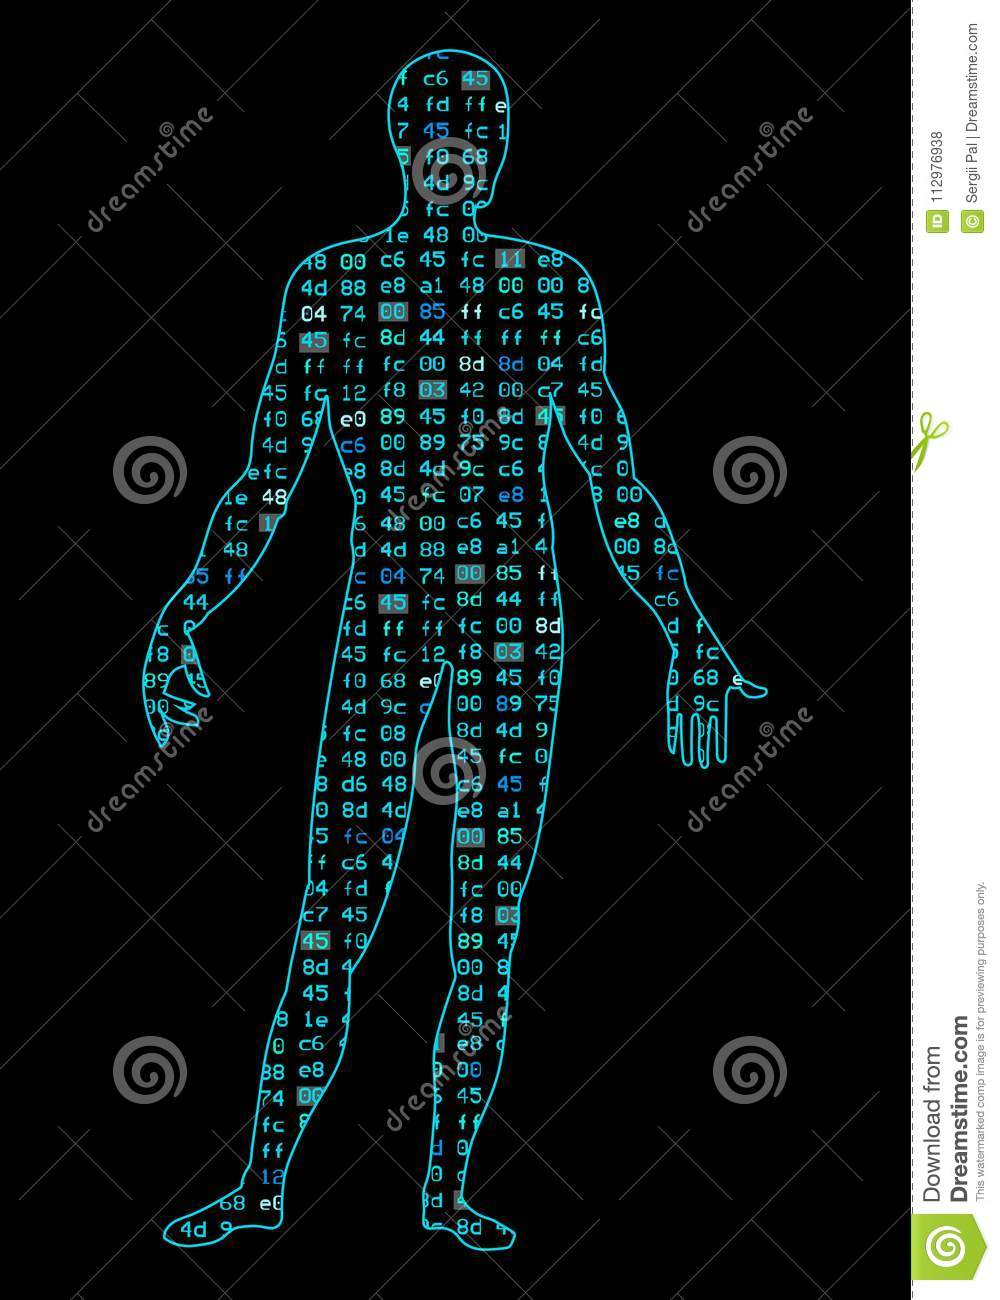 Artificial Intelligence. Silhouette of a man body, inside which binary code. It can illustrate scientific ideas